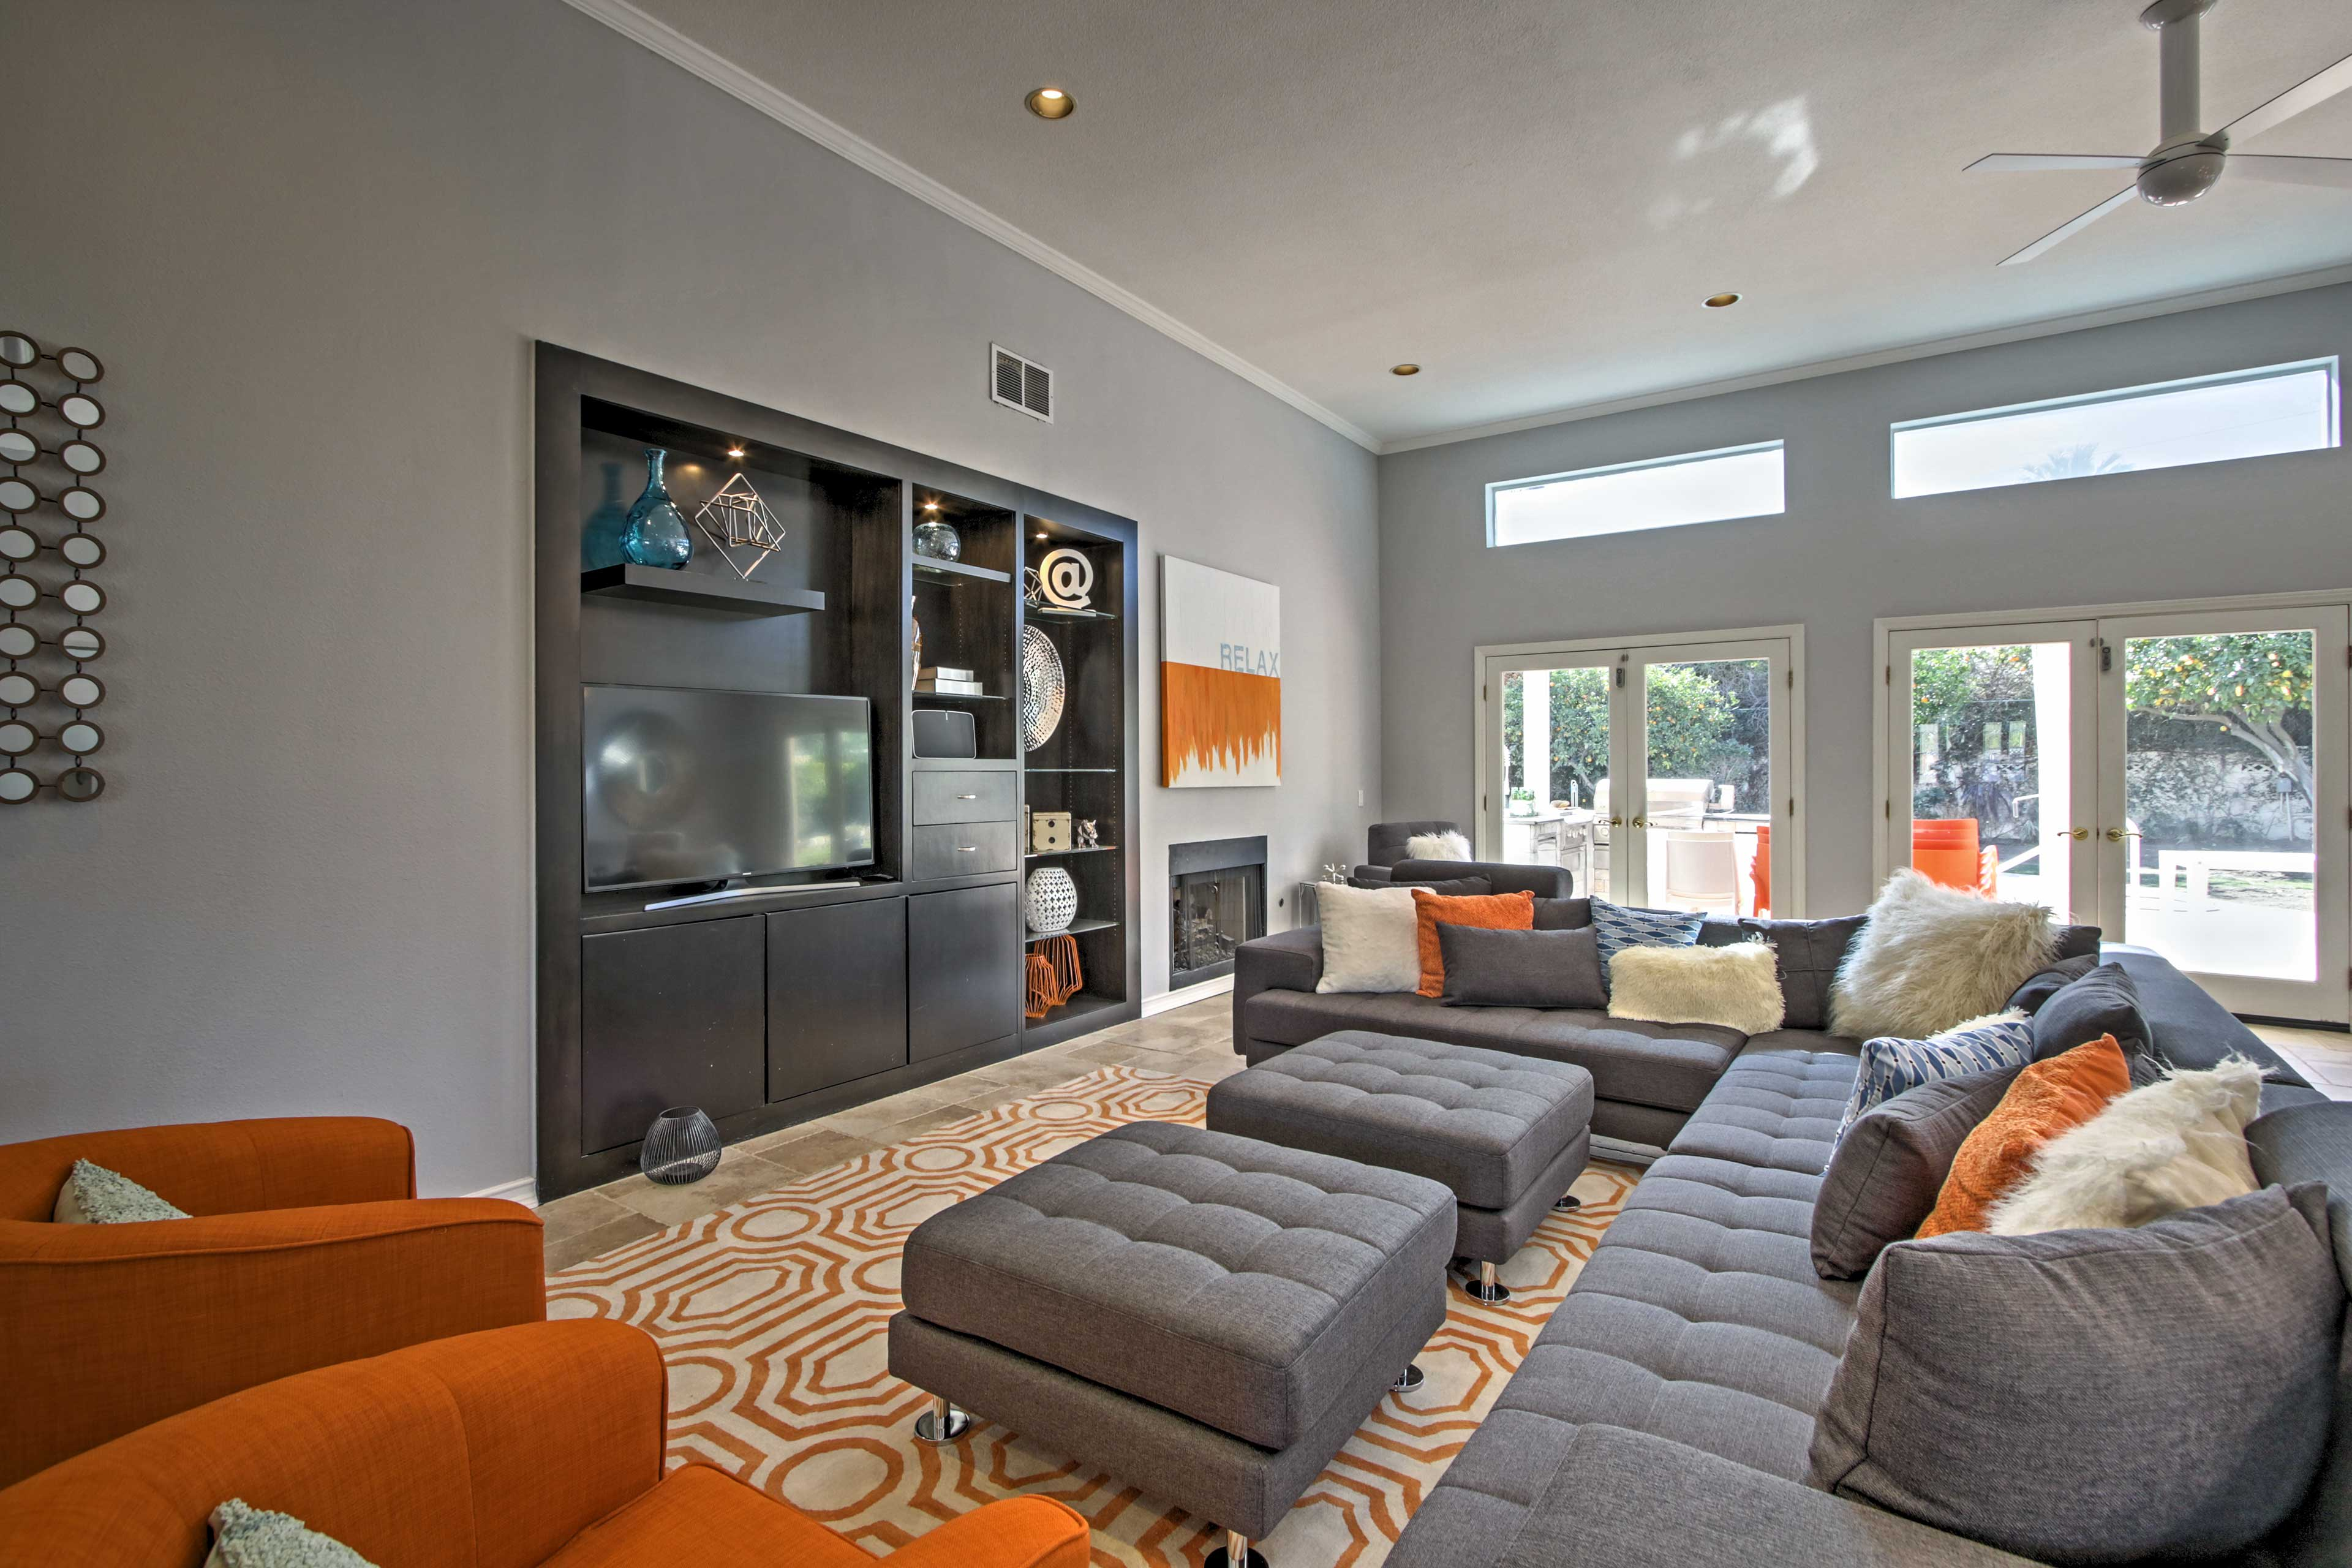 The spacious living area welcomes you to relax and unwind.